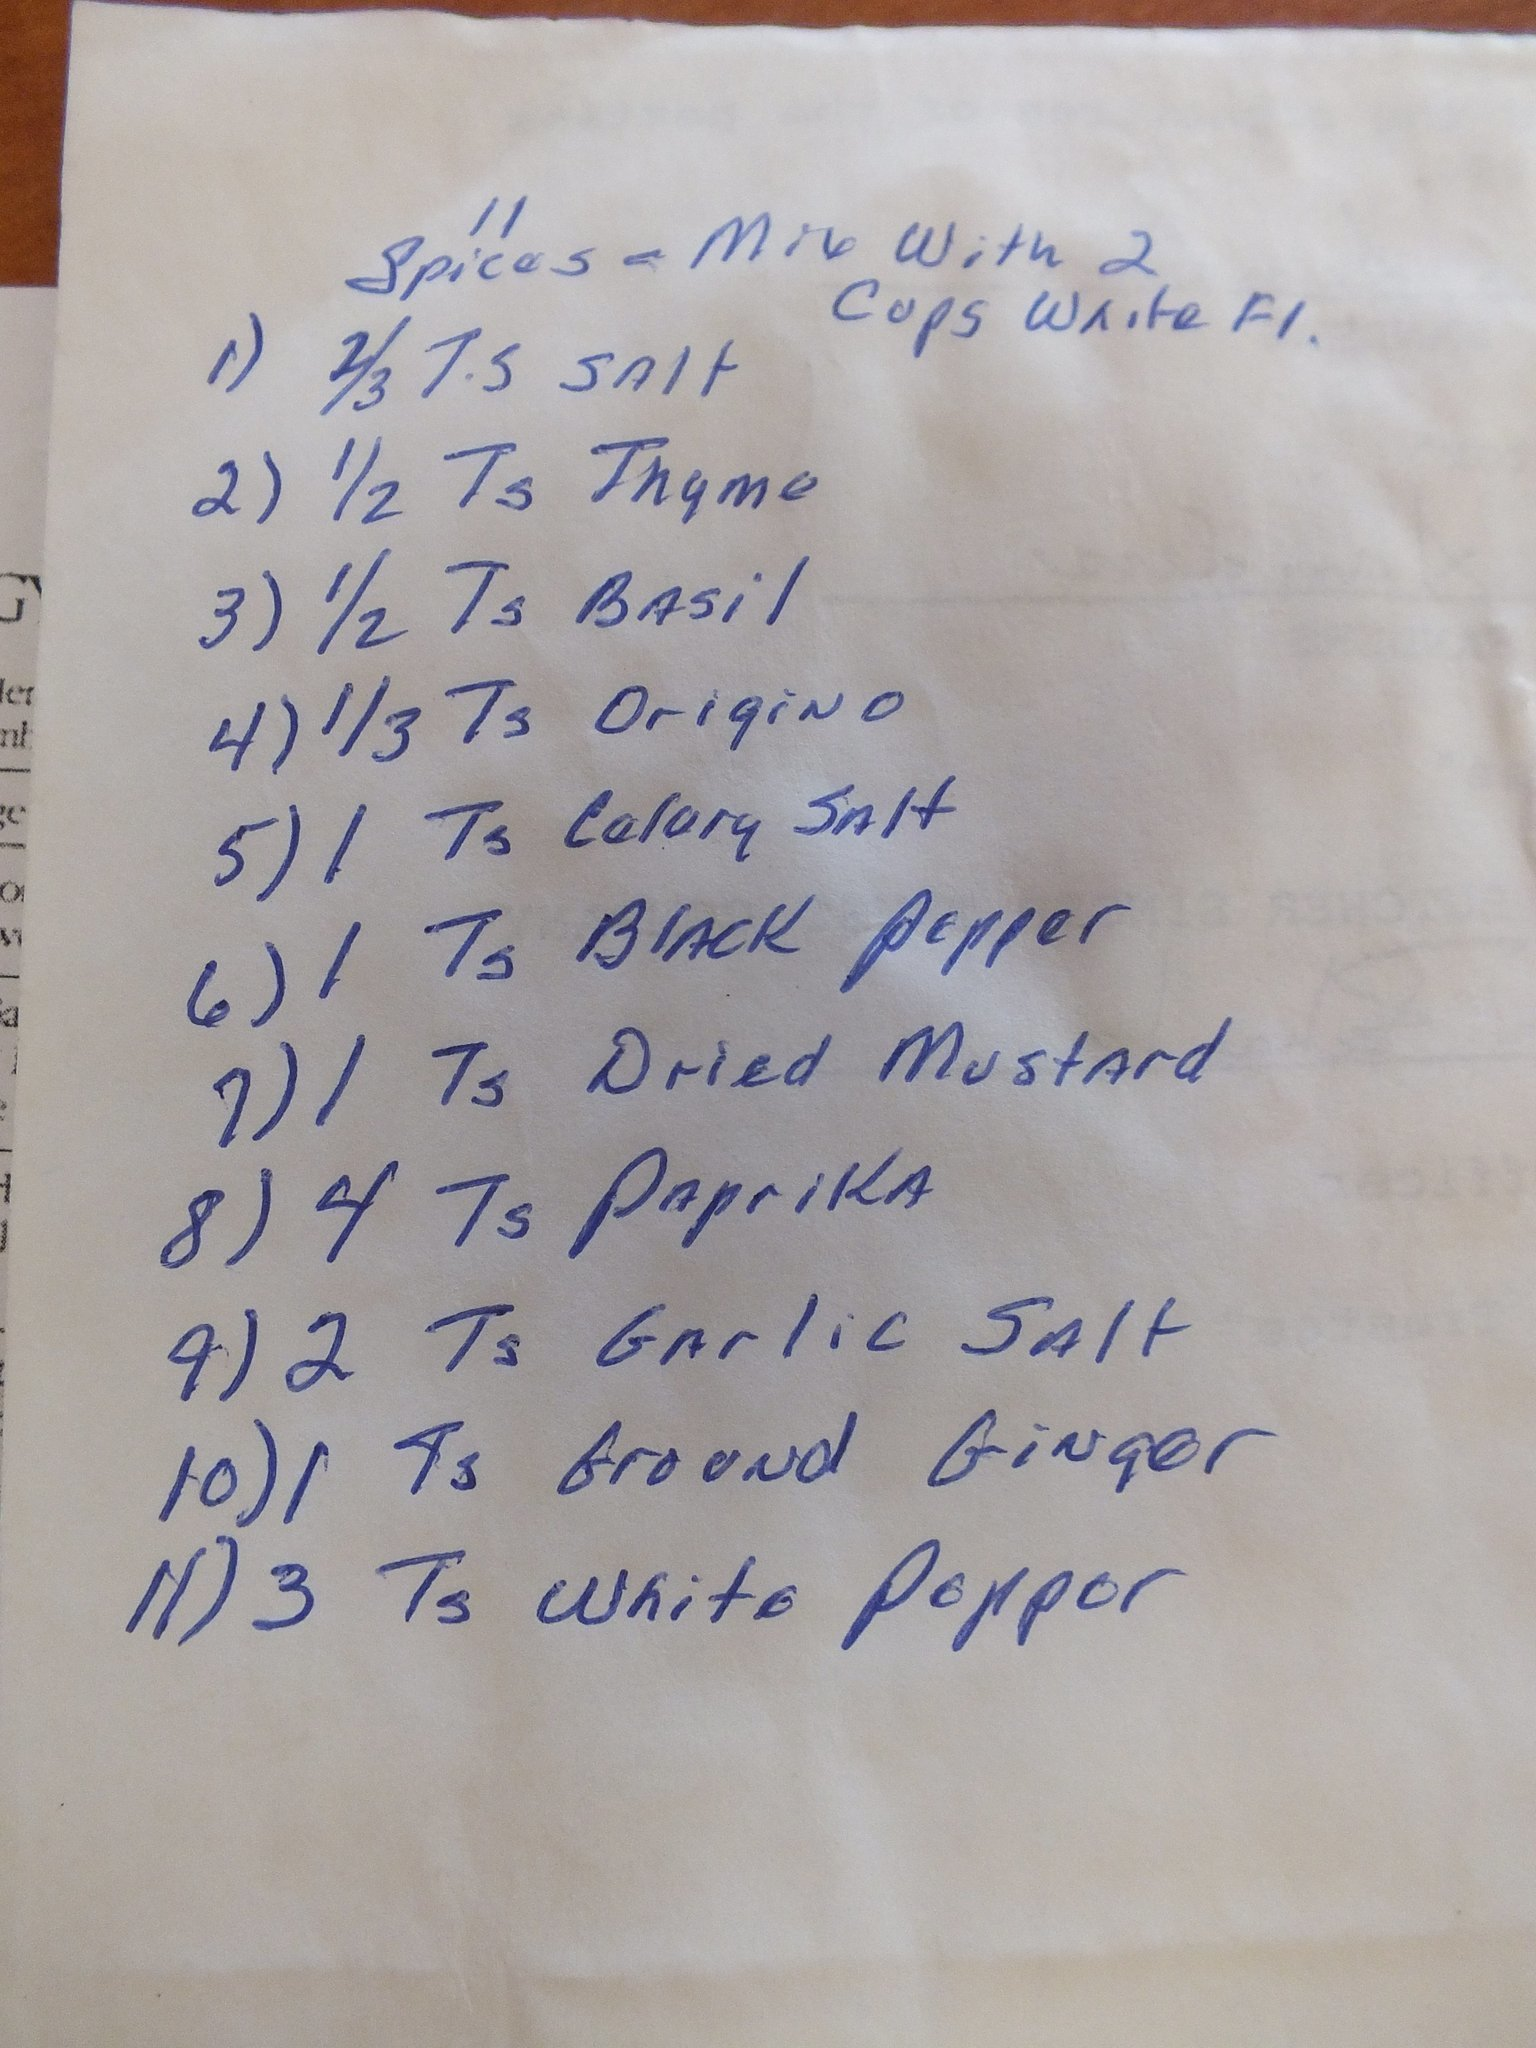 Kfc Recipe Revealed Tribune Shown Family Scrapbook With